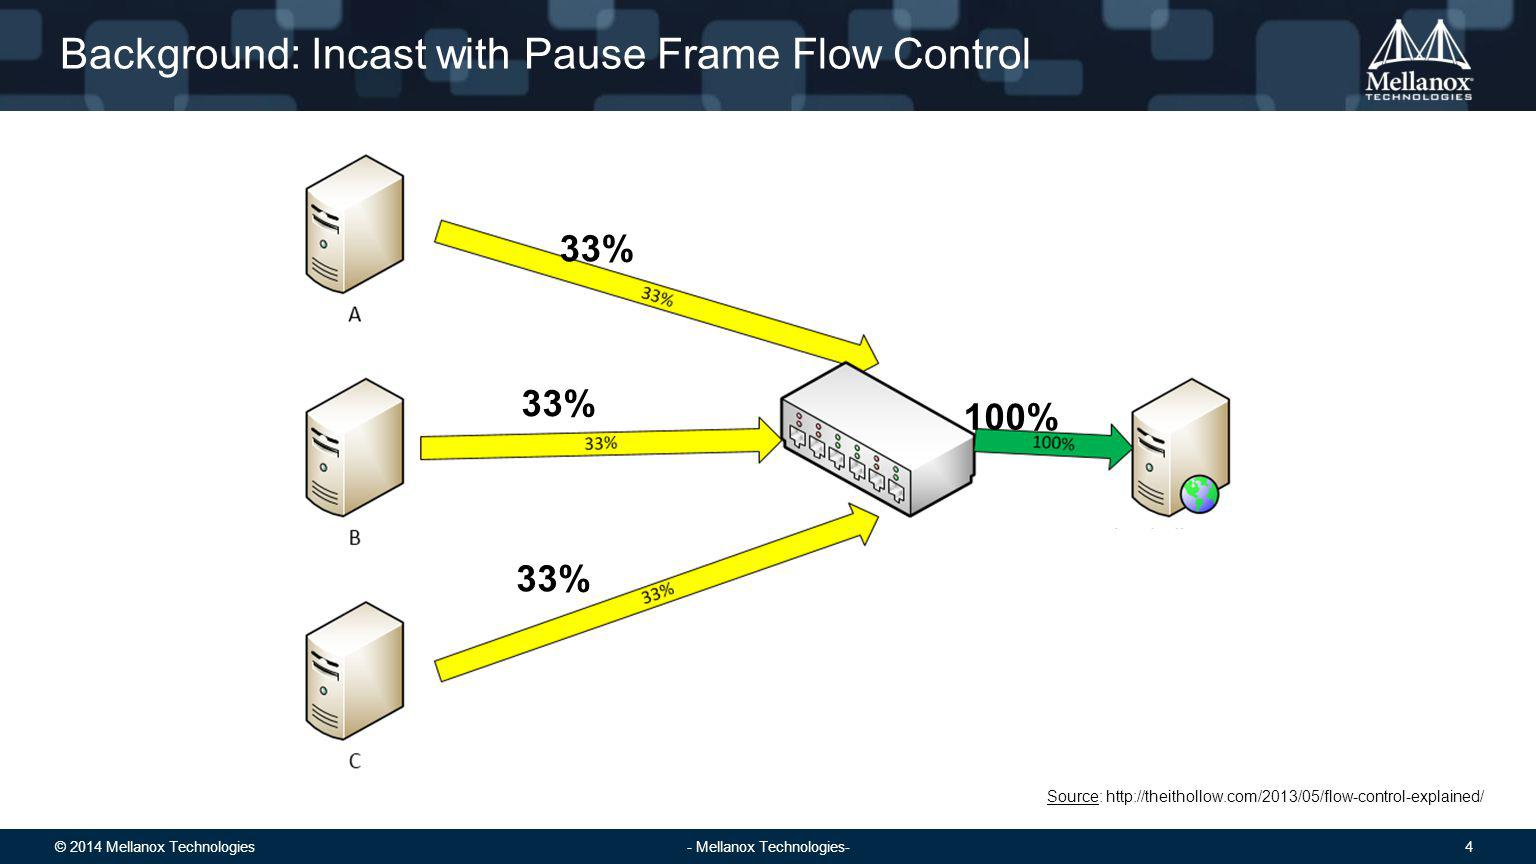 © 2014 Mellanox Technologies 5 - Mellanox Technologies- Background: Congestion Spreading Problem Source: http://theithollow.com/2013/05/flow-control-explained/ This flow is also paused, since the pause control does not distinguish between flows.